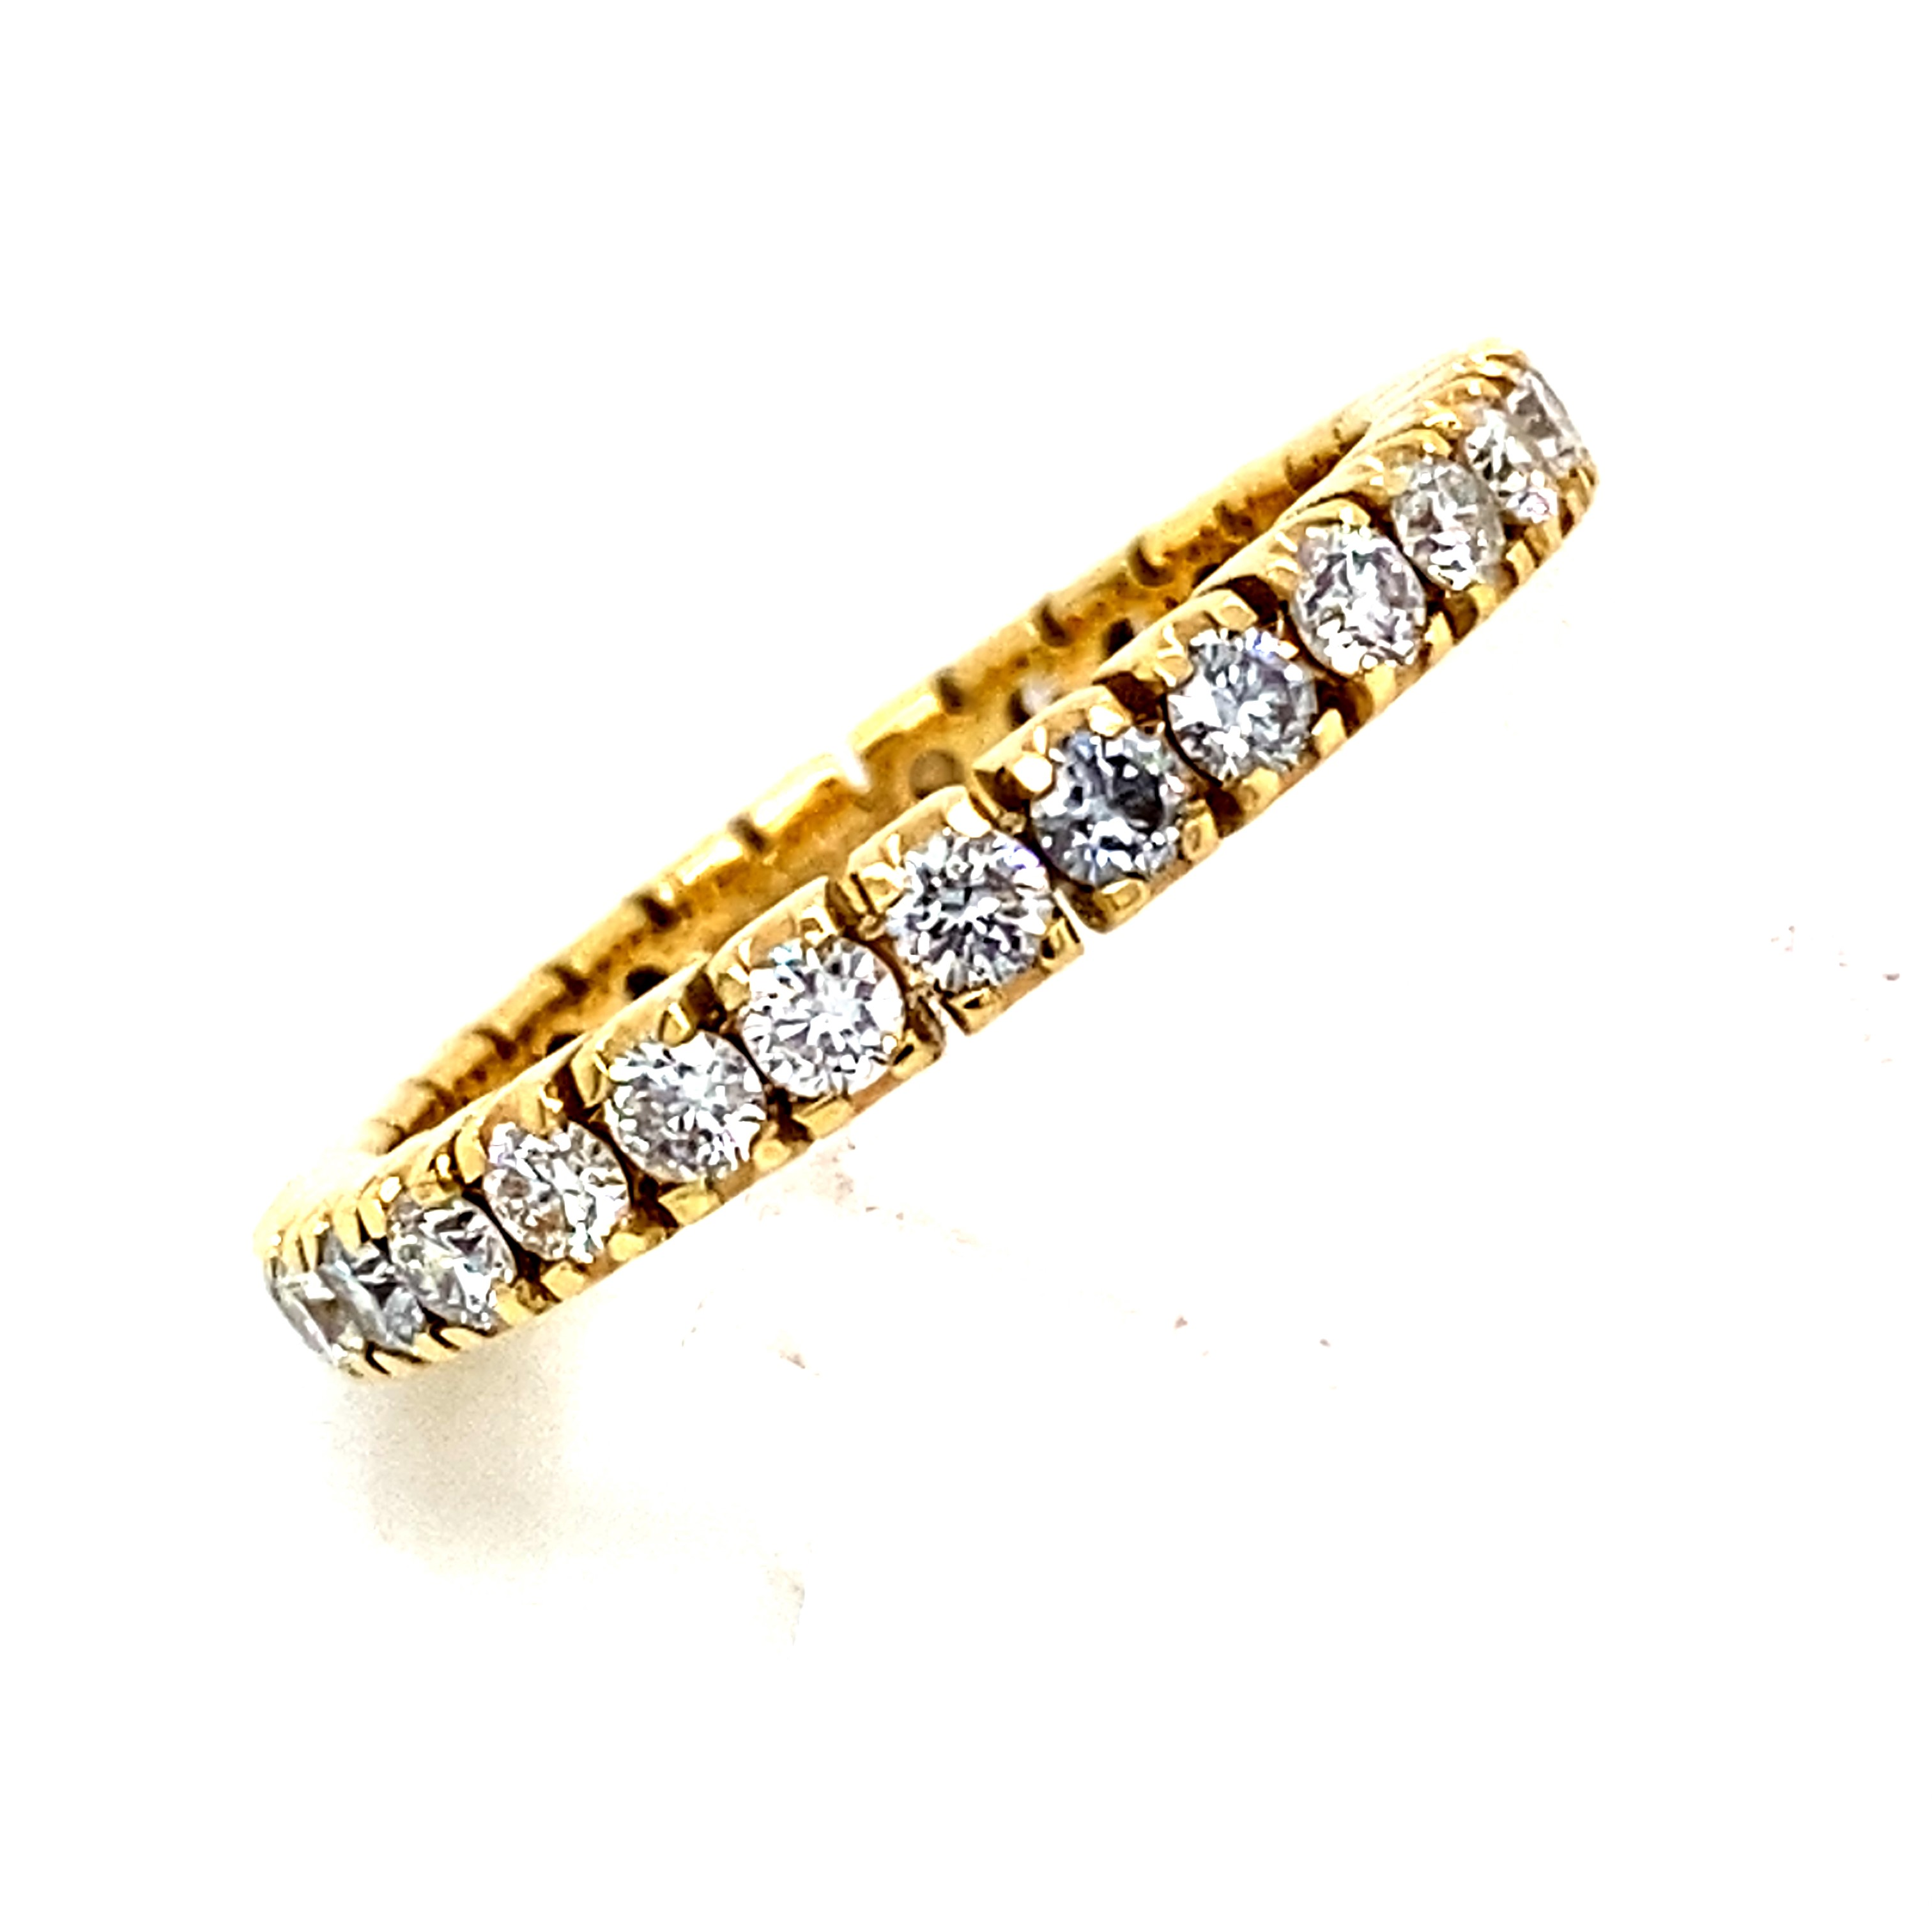 Full Eternity Style Ring with 1.00 Carats of GVs Diamonds in 18Y